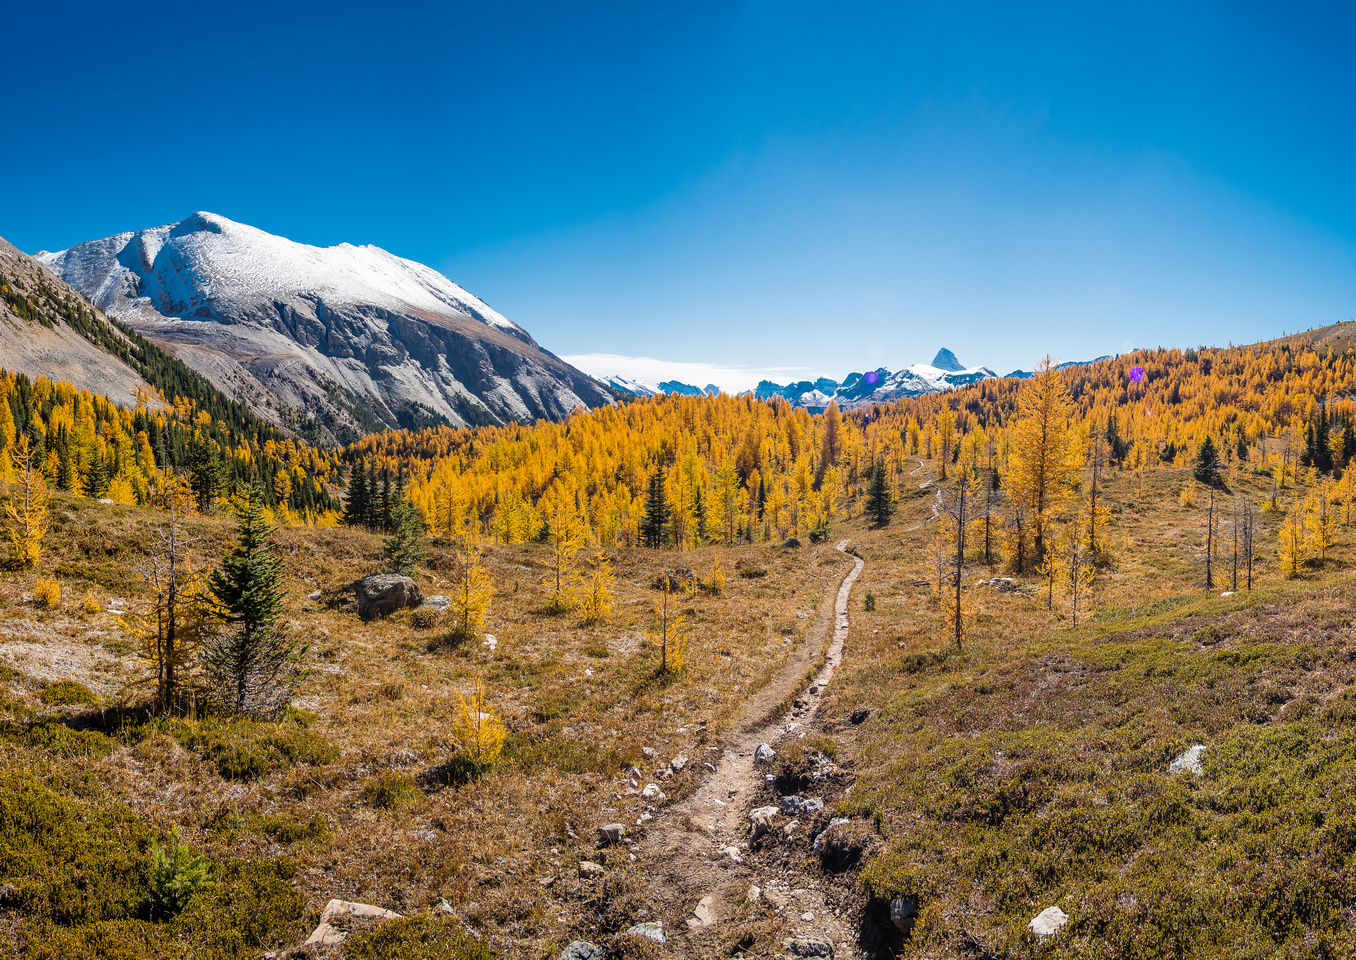 Larch brilliance from near Citadel Pass, looking back towards Mount Assiniboine in the far distance and Golden Mountain rising at left.